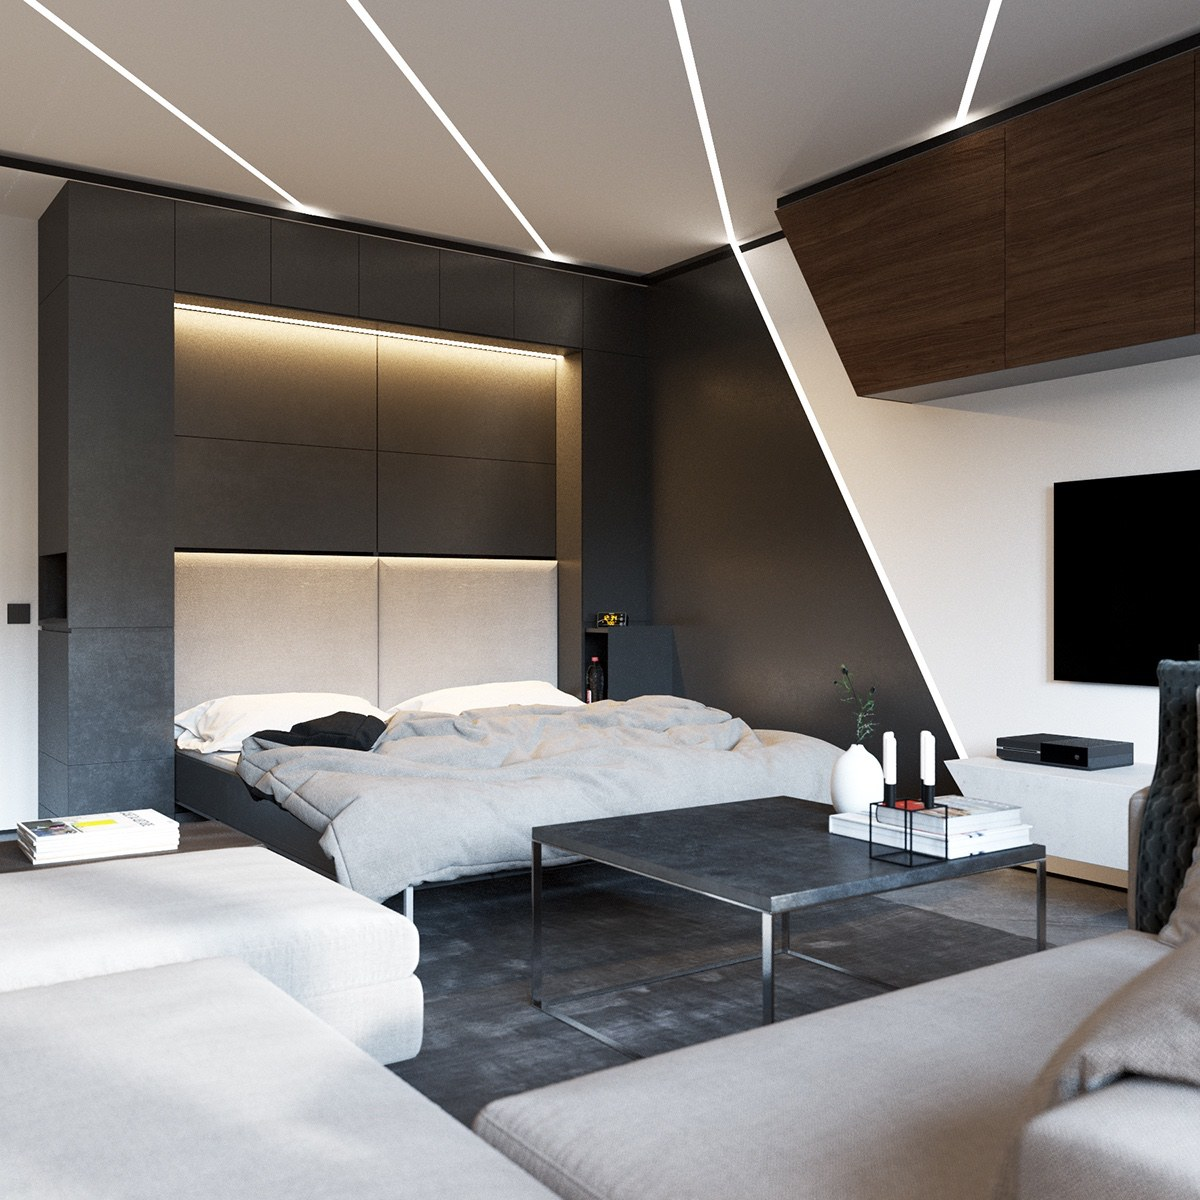 3 Open Layout Apartments That Use Clever Space Saving Techniques